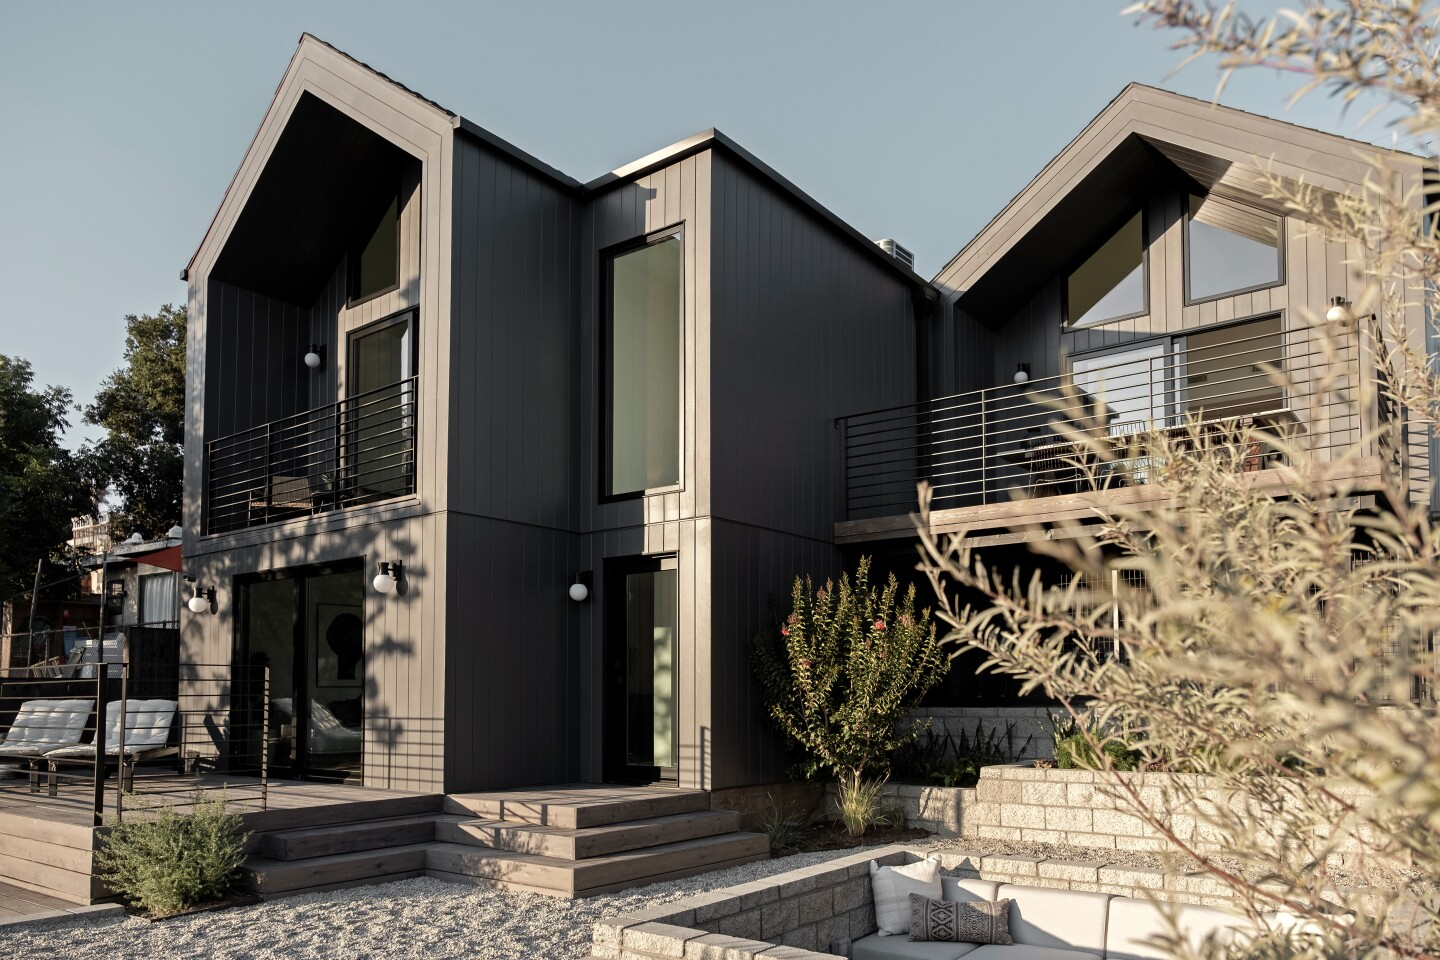 Listed for $1.295 million, the subdued Eagle Rock residence was completed this year and retains only the original foundation of a former bungalow. The bright, austere interior of the newly built home was inspired by Scandinavian design, which emphasizes clean lines and functional living spaces. Built-in booth seating in the kitchen matches the custom cabinetry and light oak floors. A dining terrace sits off the kitchen area. The backyard unfolds layers with tiers of various planters, decks and a sunken conversation/fire pit.